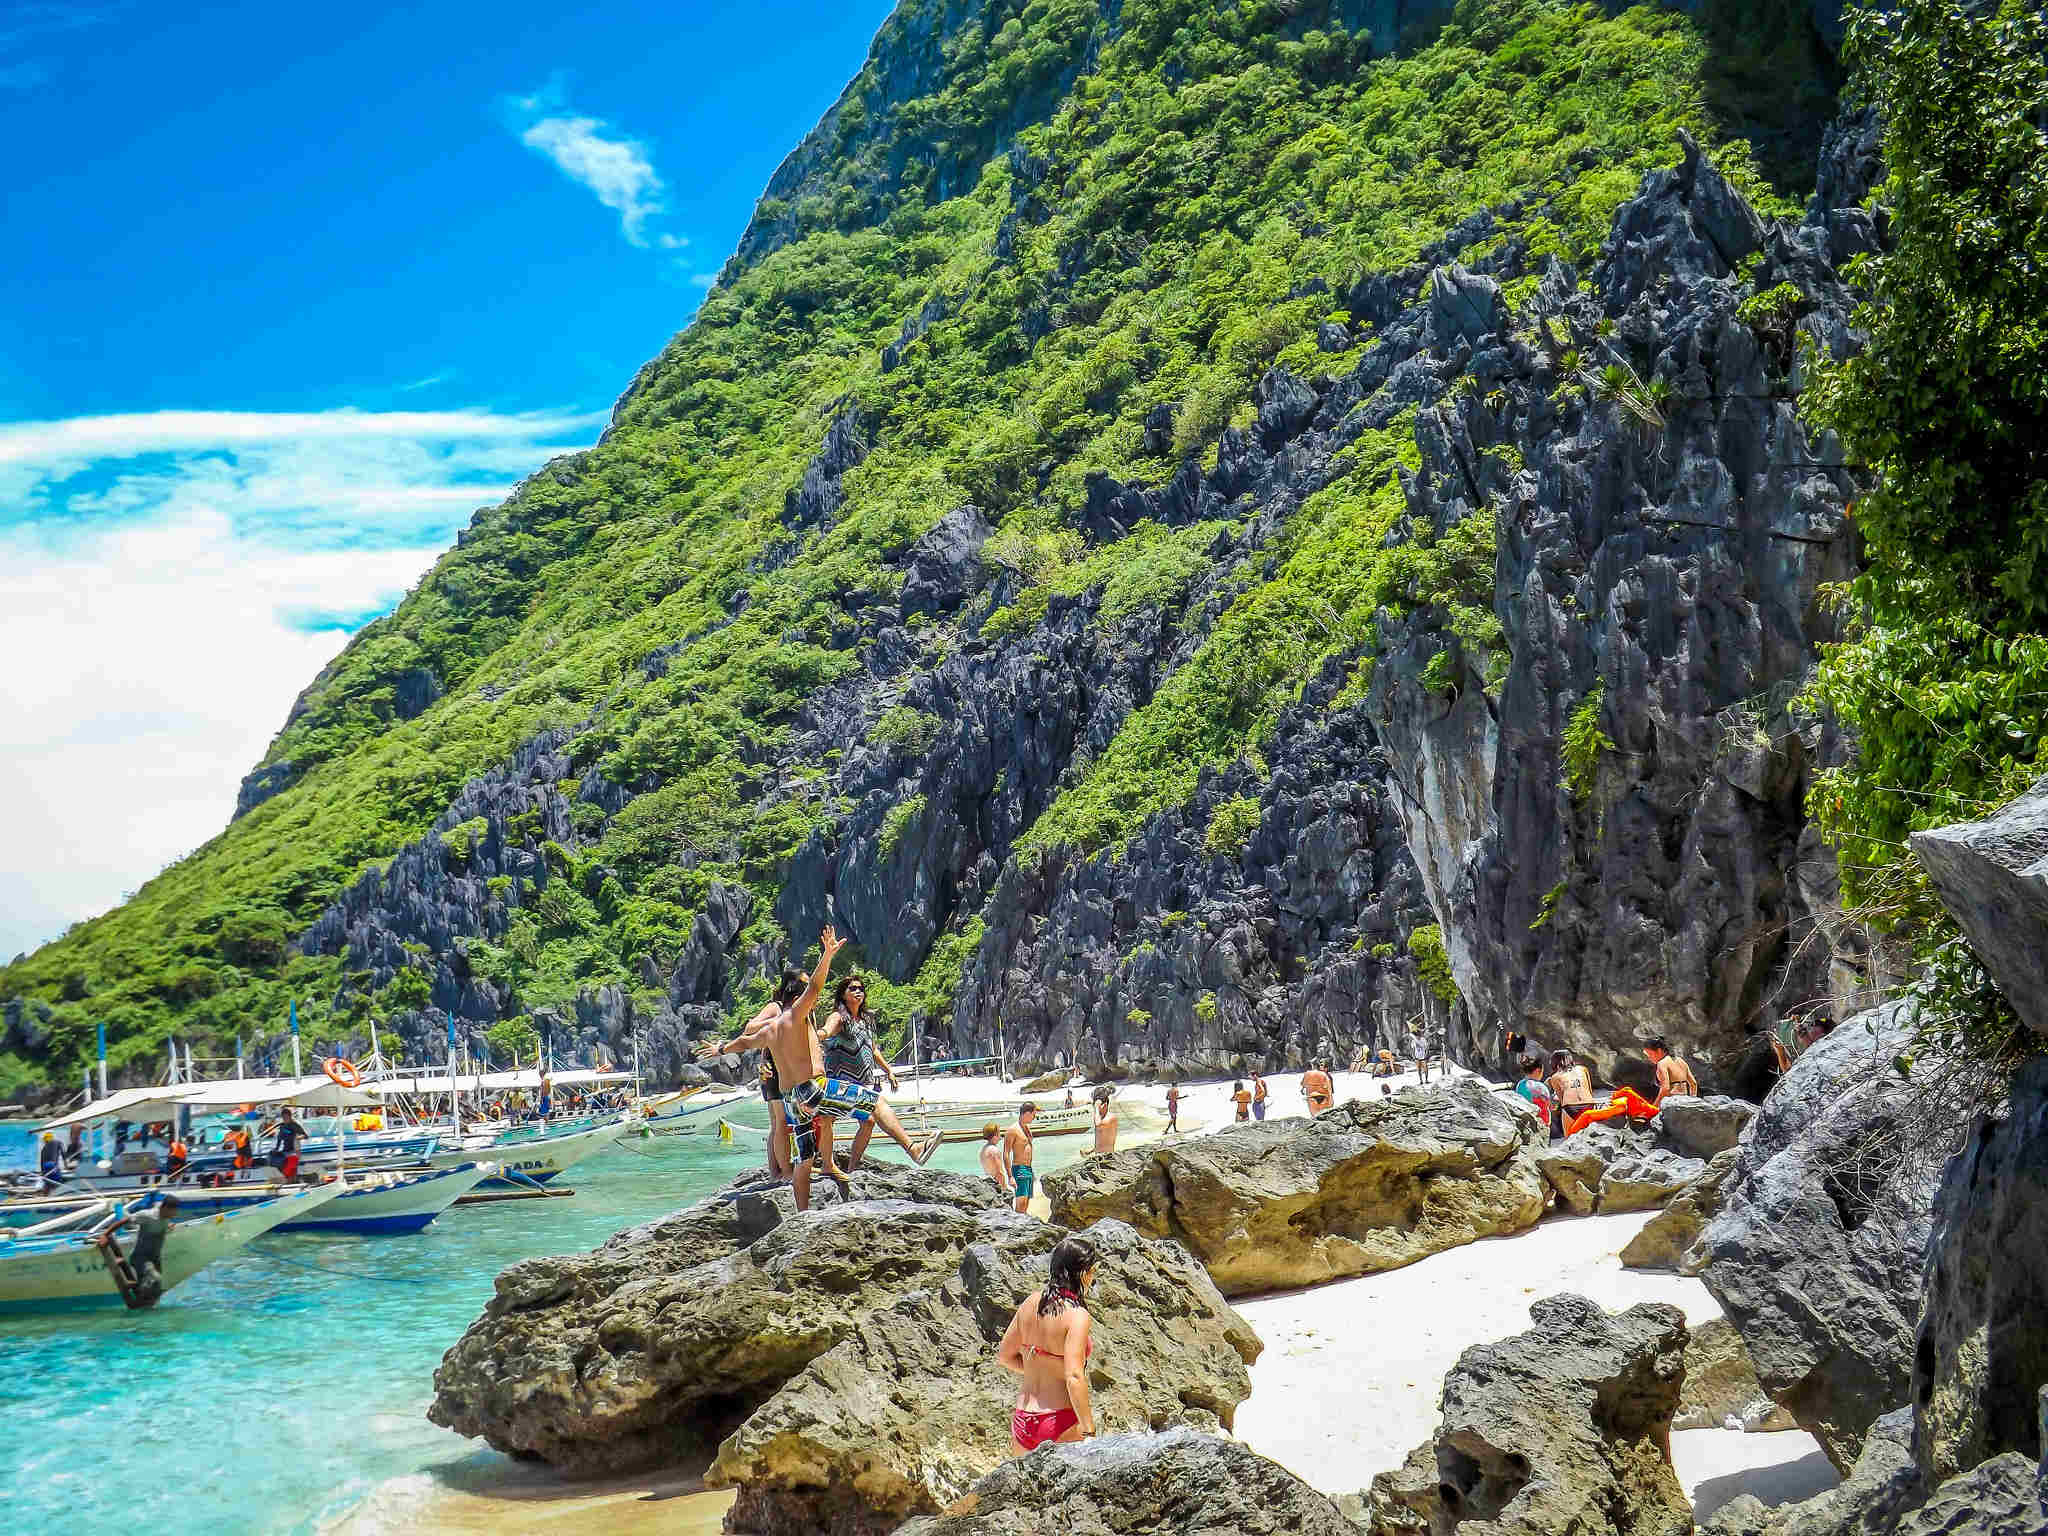 tourism act philippines Book your tickets online for the top things to do in philippines on tripadvisor: see 204,246 traveler reviews and photos of philippines tourist attractions find what to do today, this weekend, or in october.